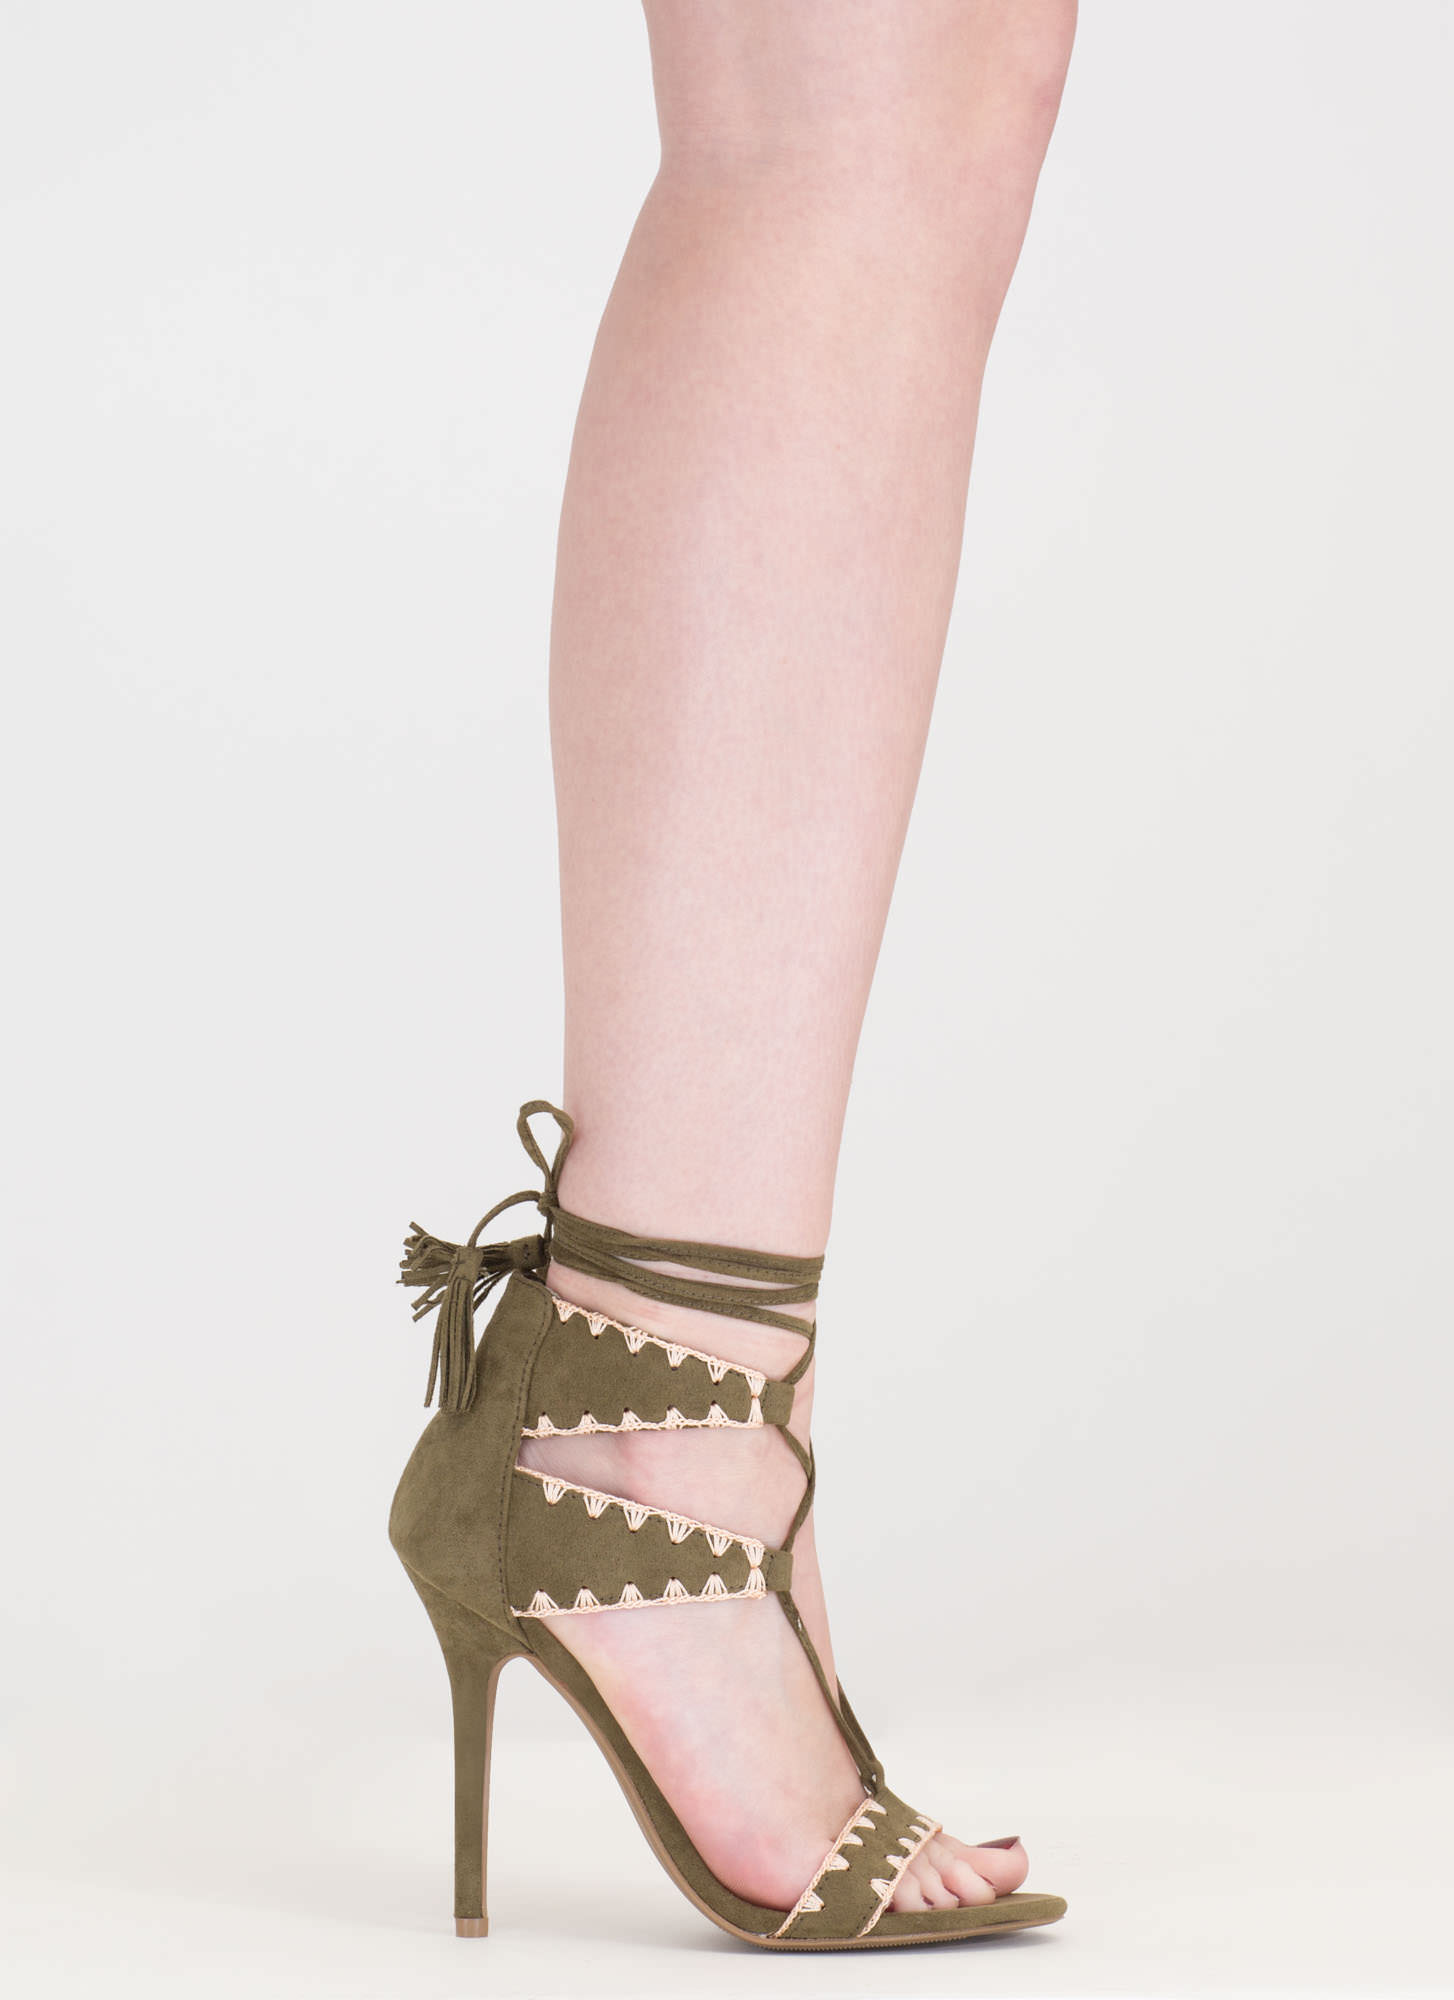 Embroider Away Tasseled Lace-Up Heels OLIVE